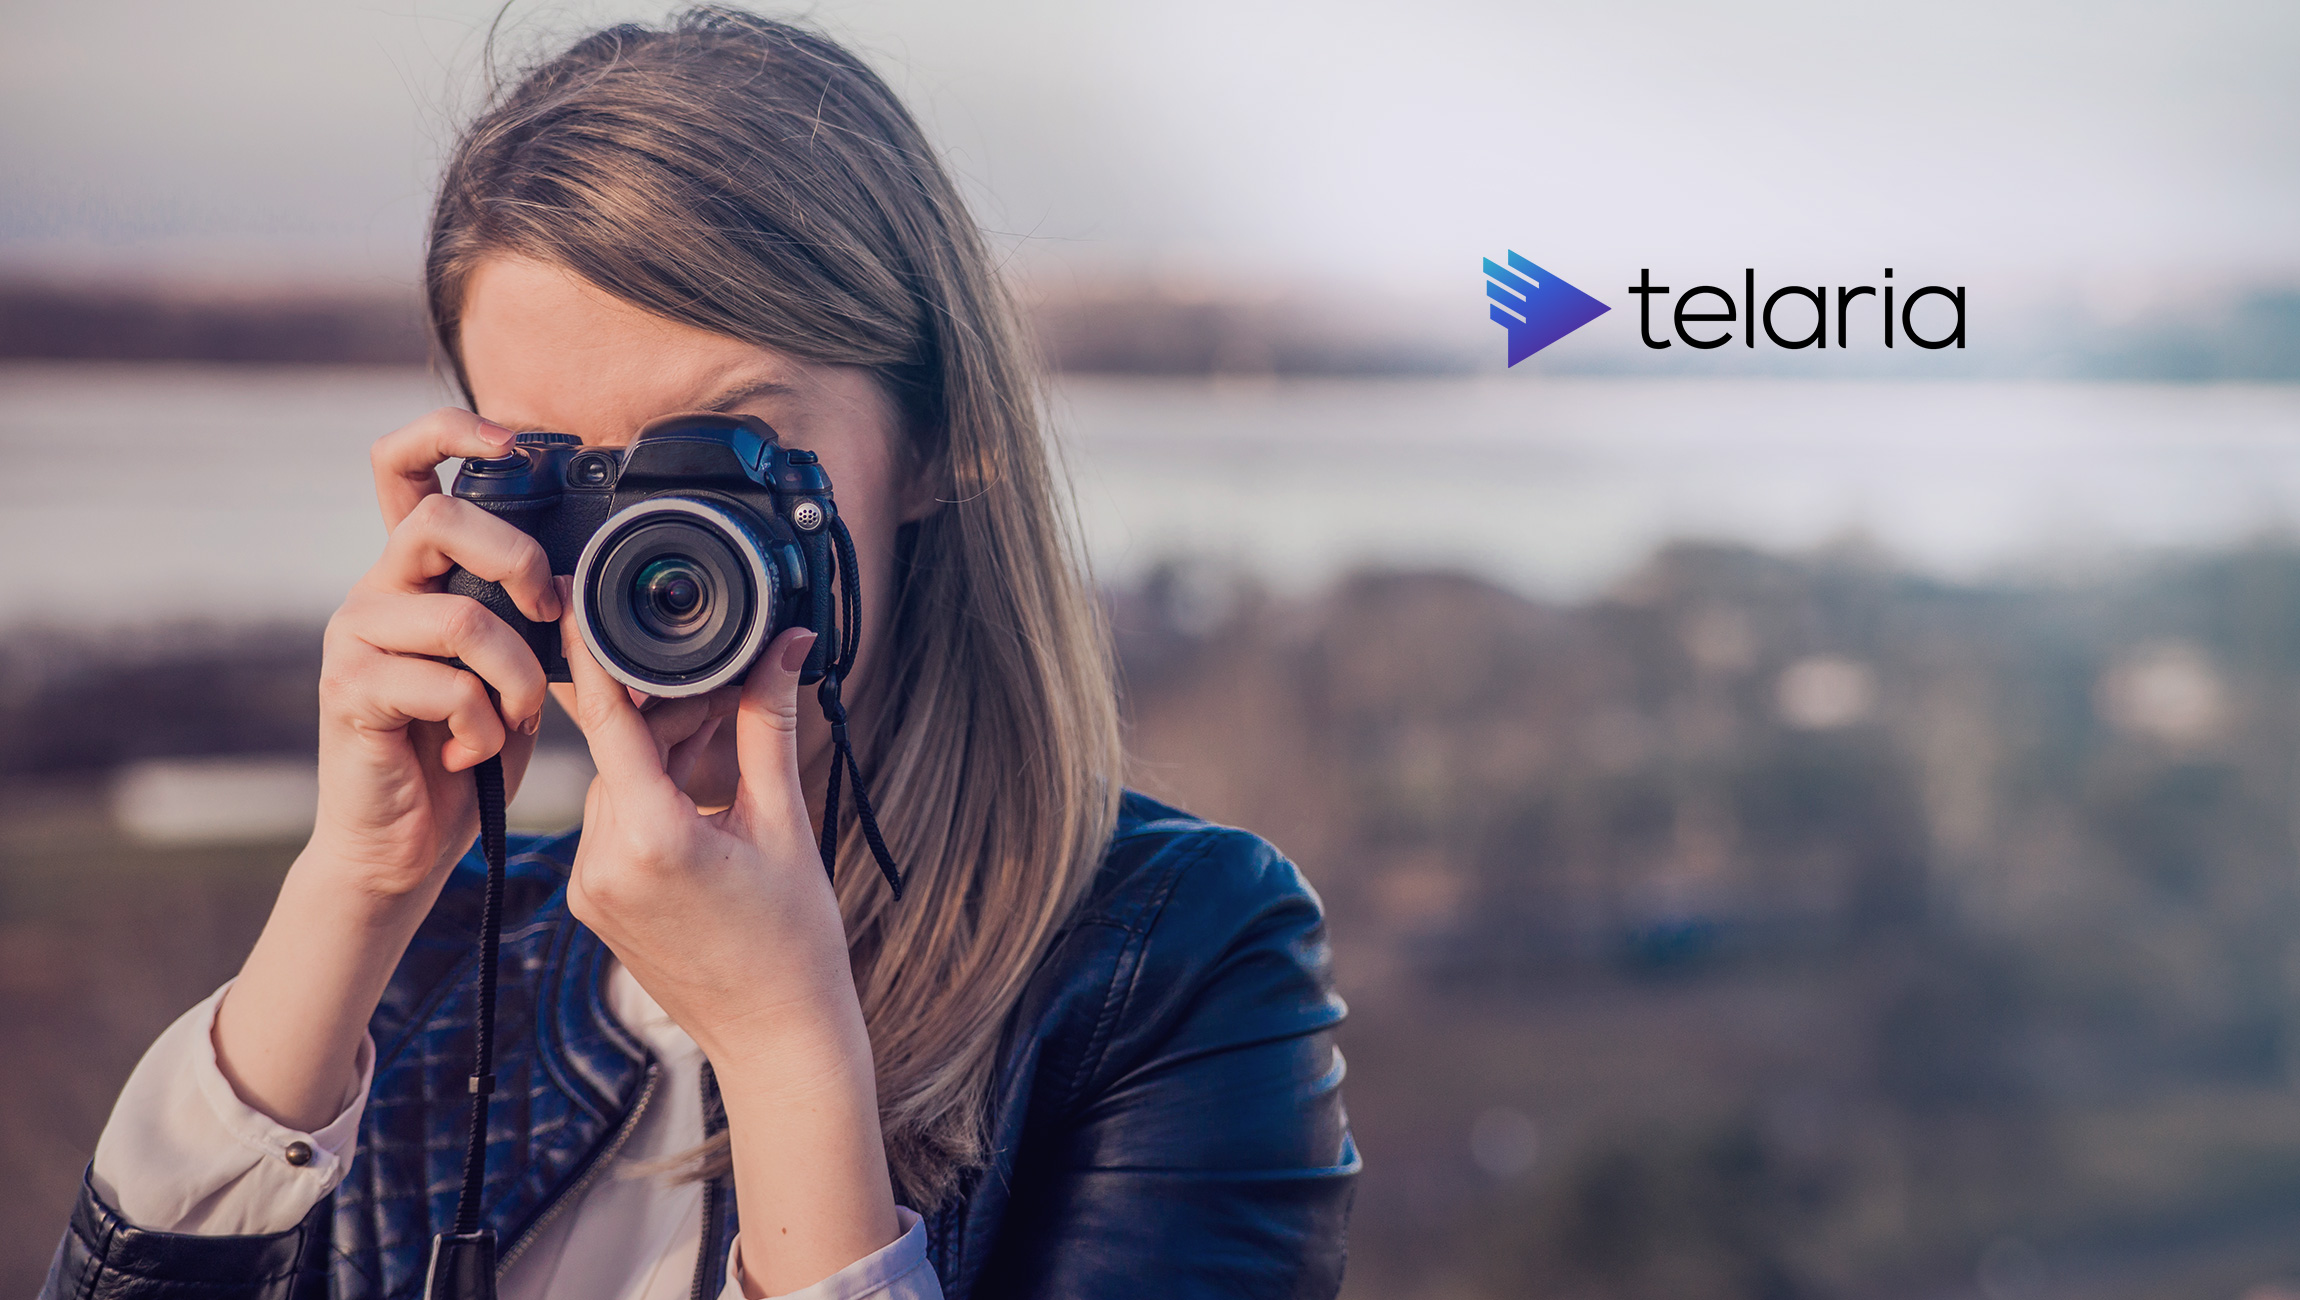 Cheddar Taps Telaria's Video Management Platform (VMP) As SSP Partner to Scale Connected TV Advertising Programmatically